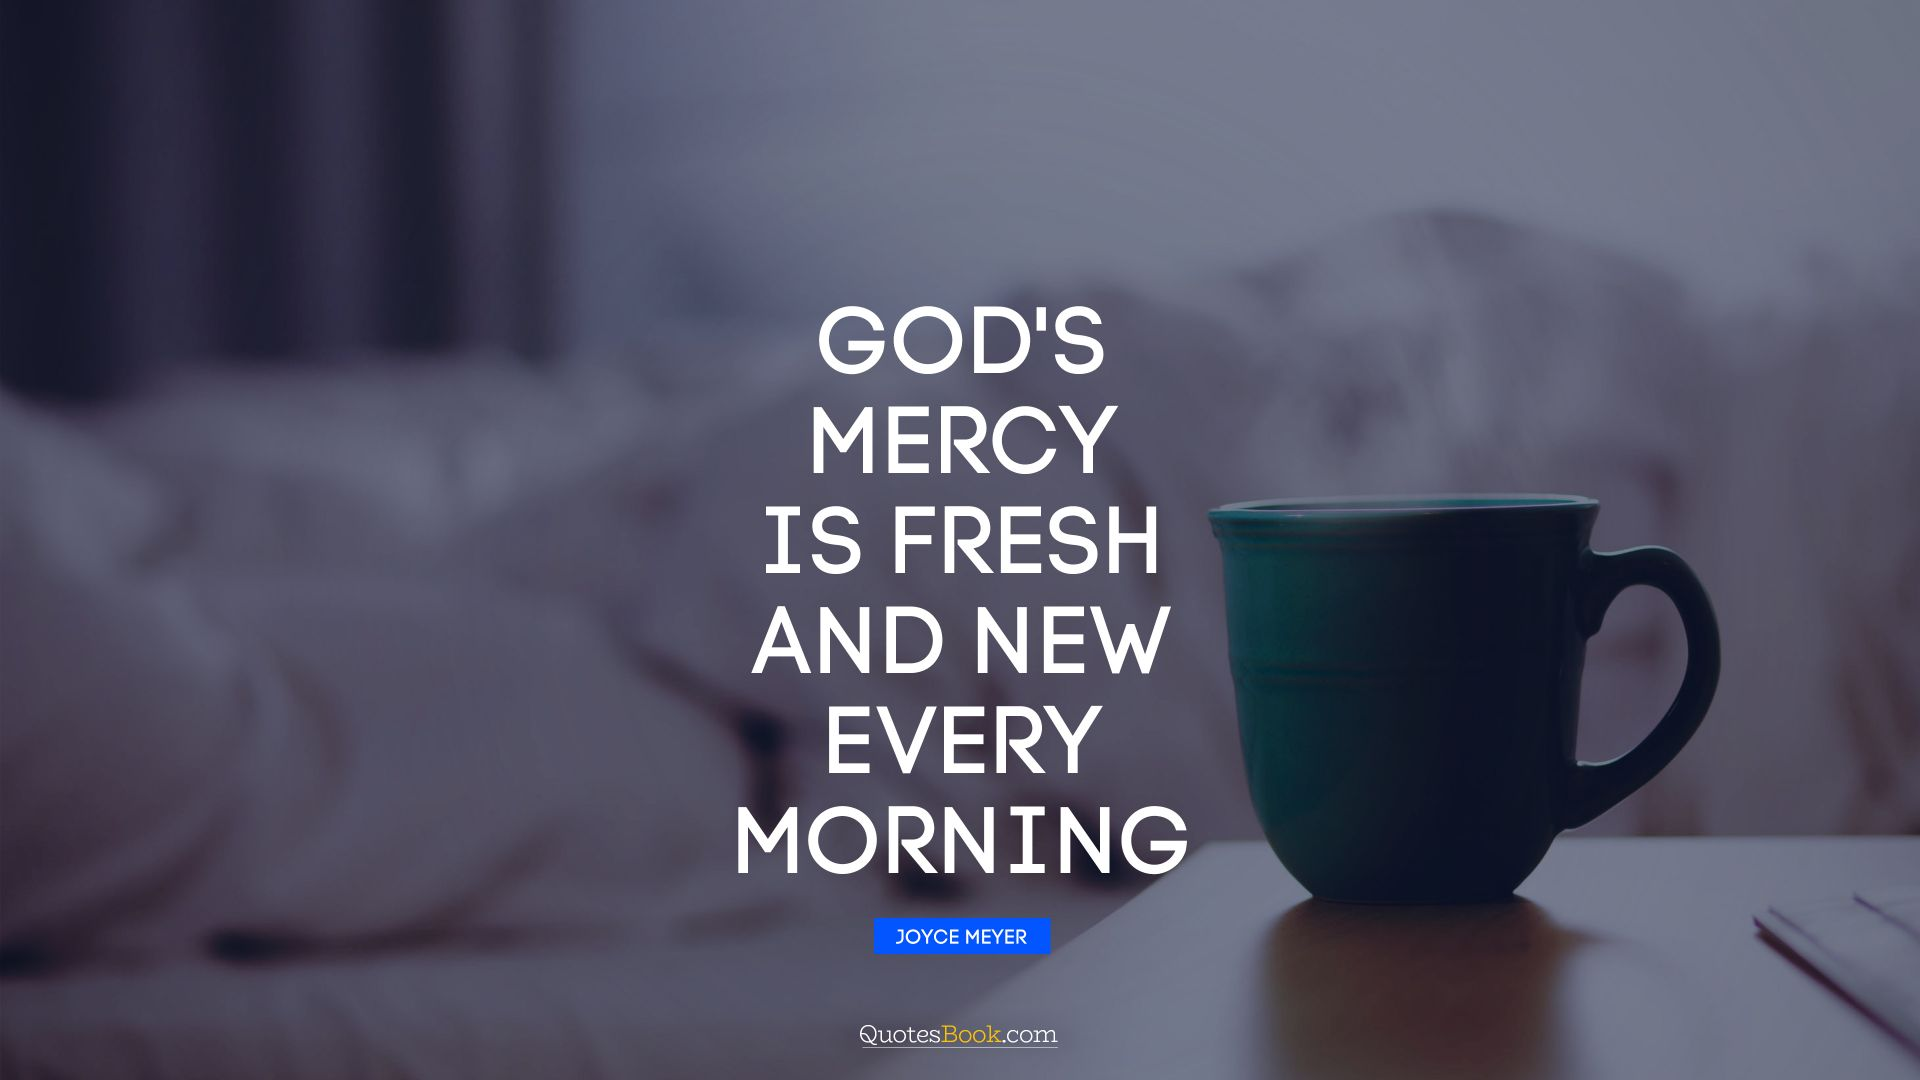 God's mercy is fresh and new every morning. - Quote by Joyce Meyer